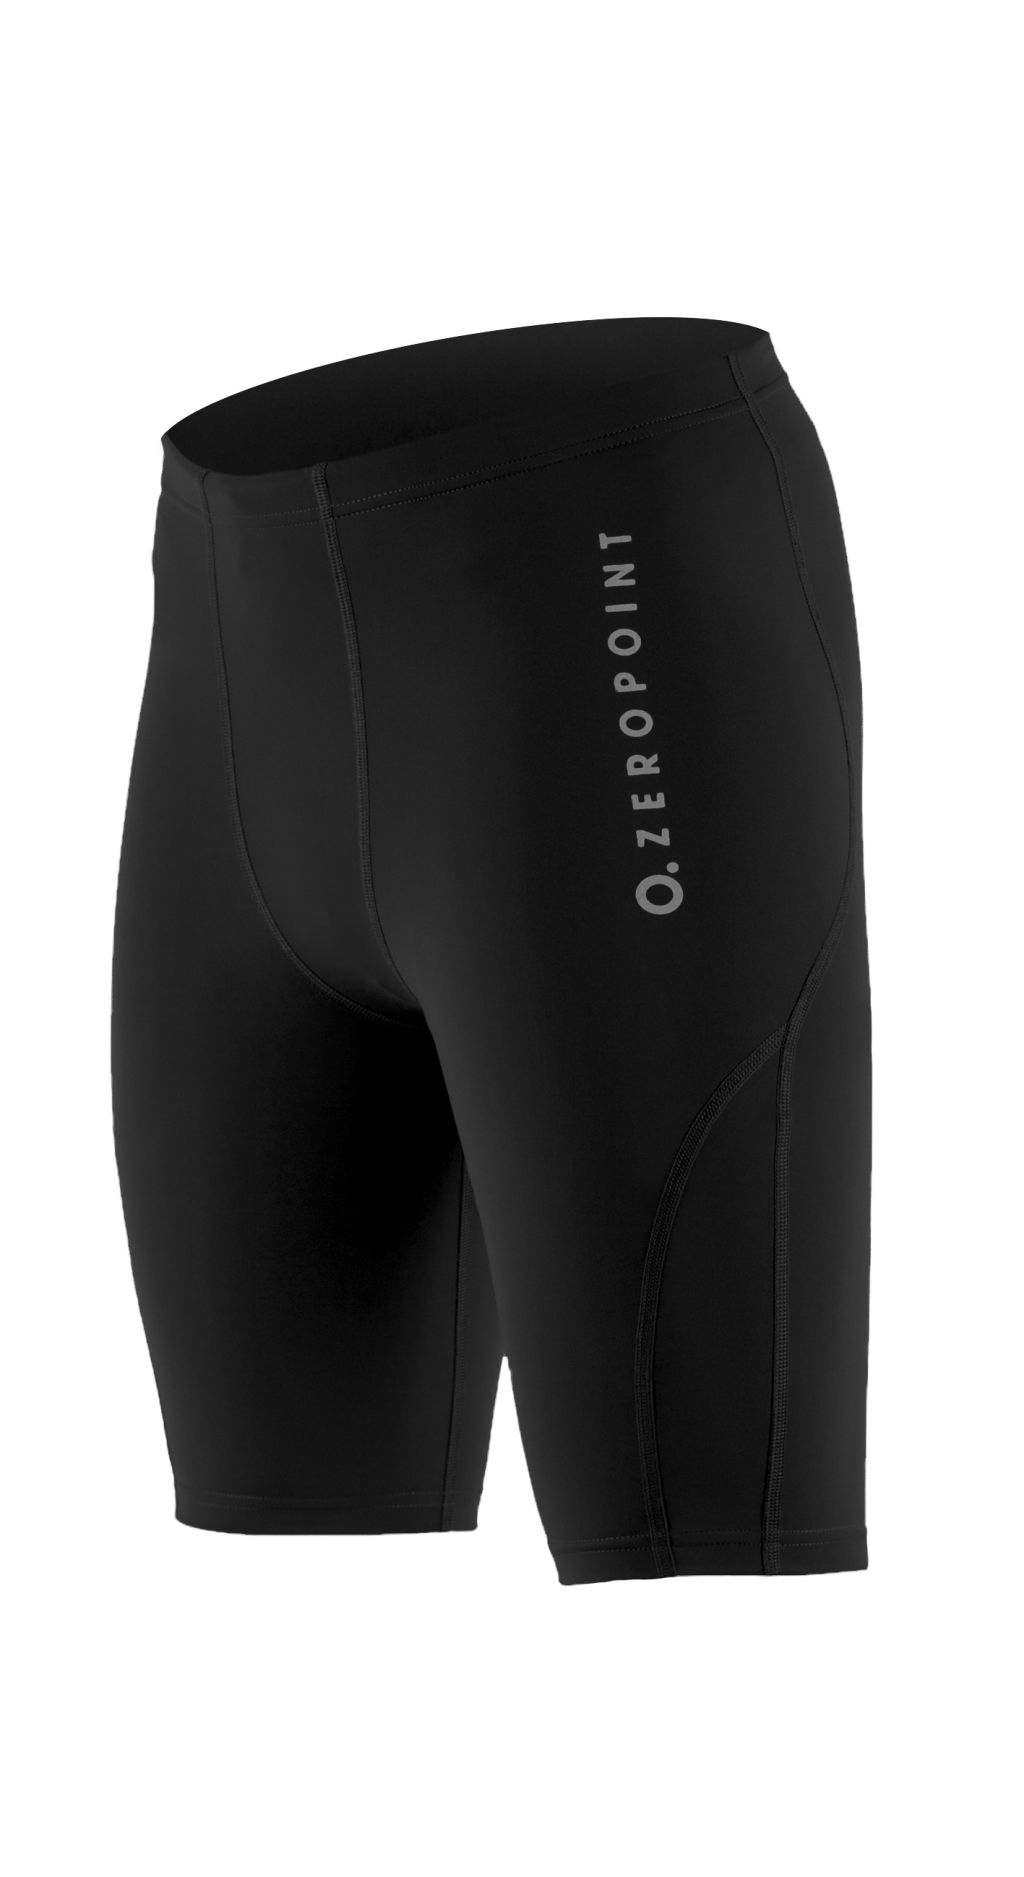 Zeropoint Compression Shorts M